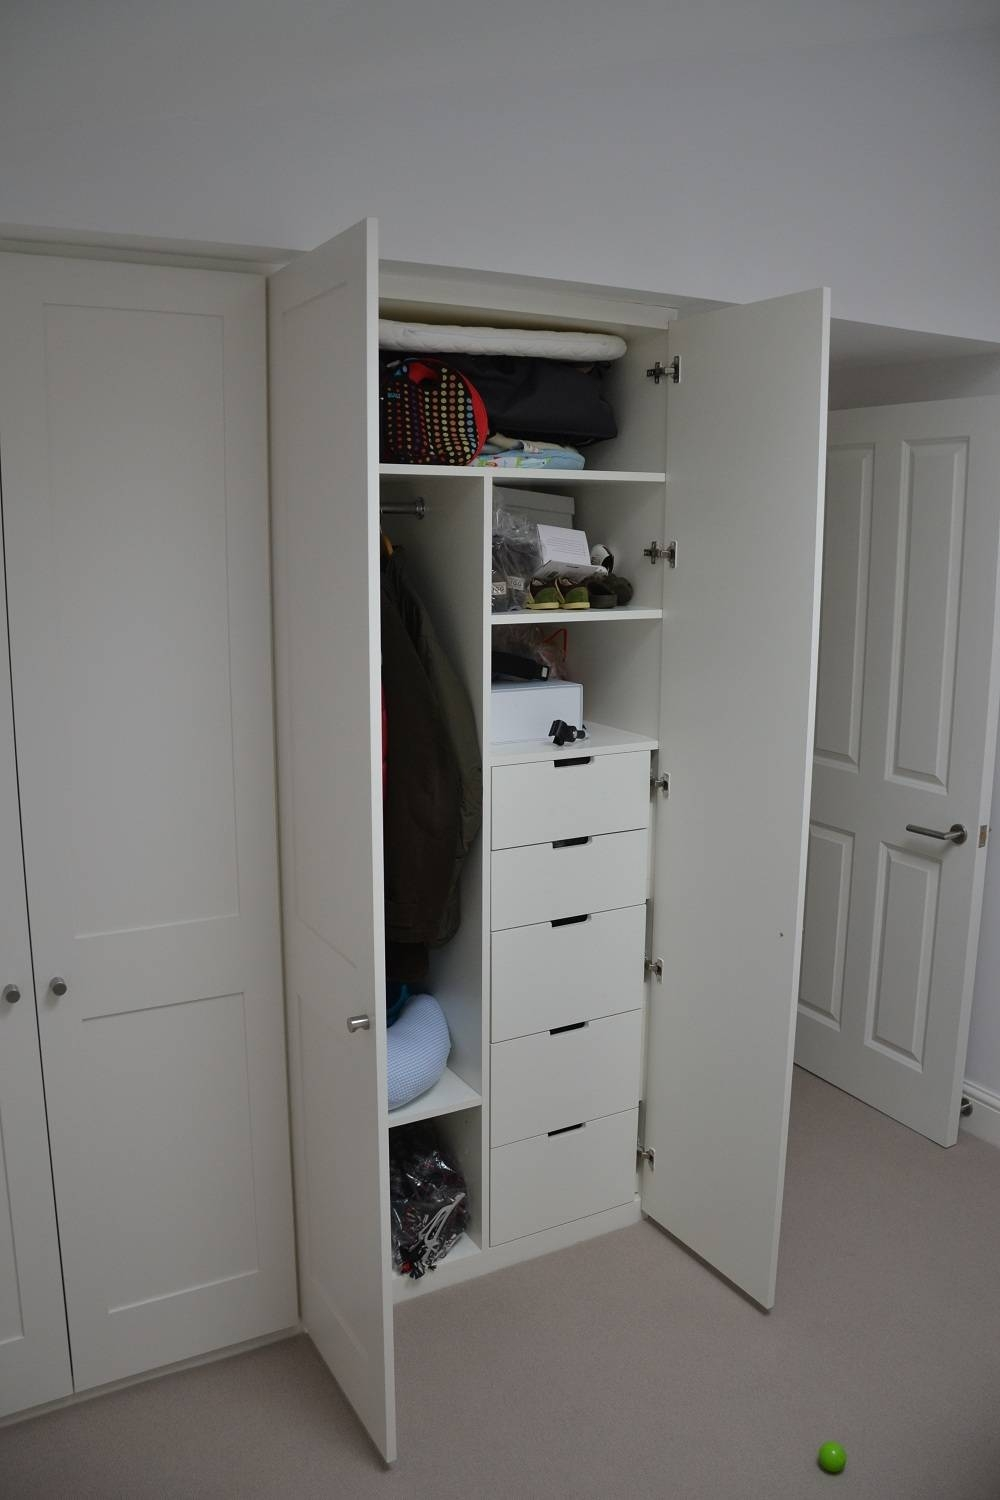 Drawers - Bespoke Fitted Furniture For London | Lahart Carpentry regarding Double Wardrobe With Drawers and Shelves (Image 13 of 30)